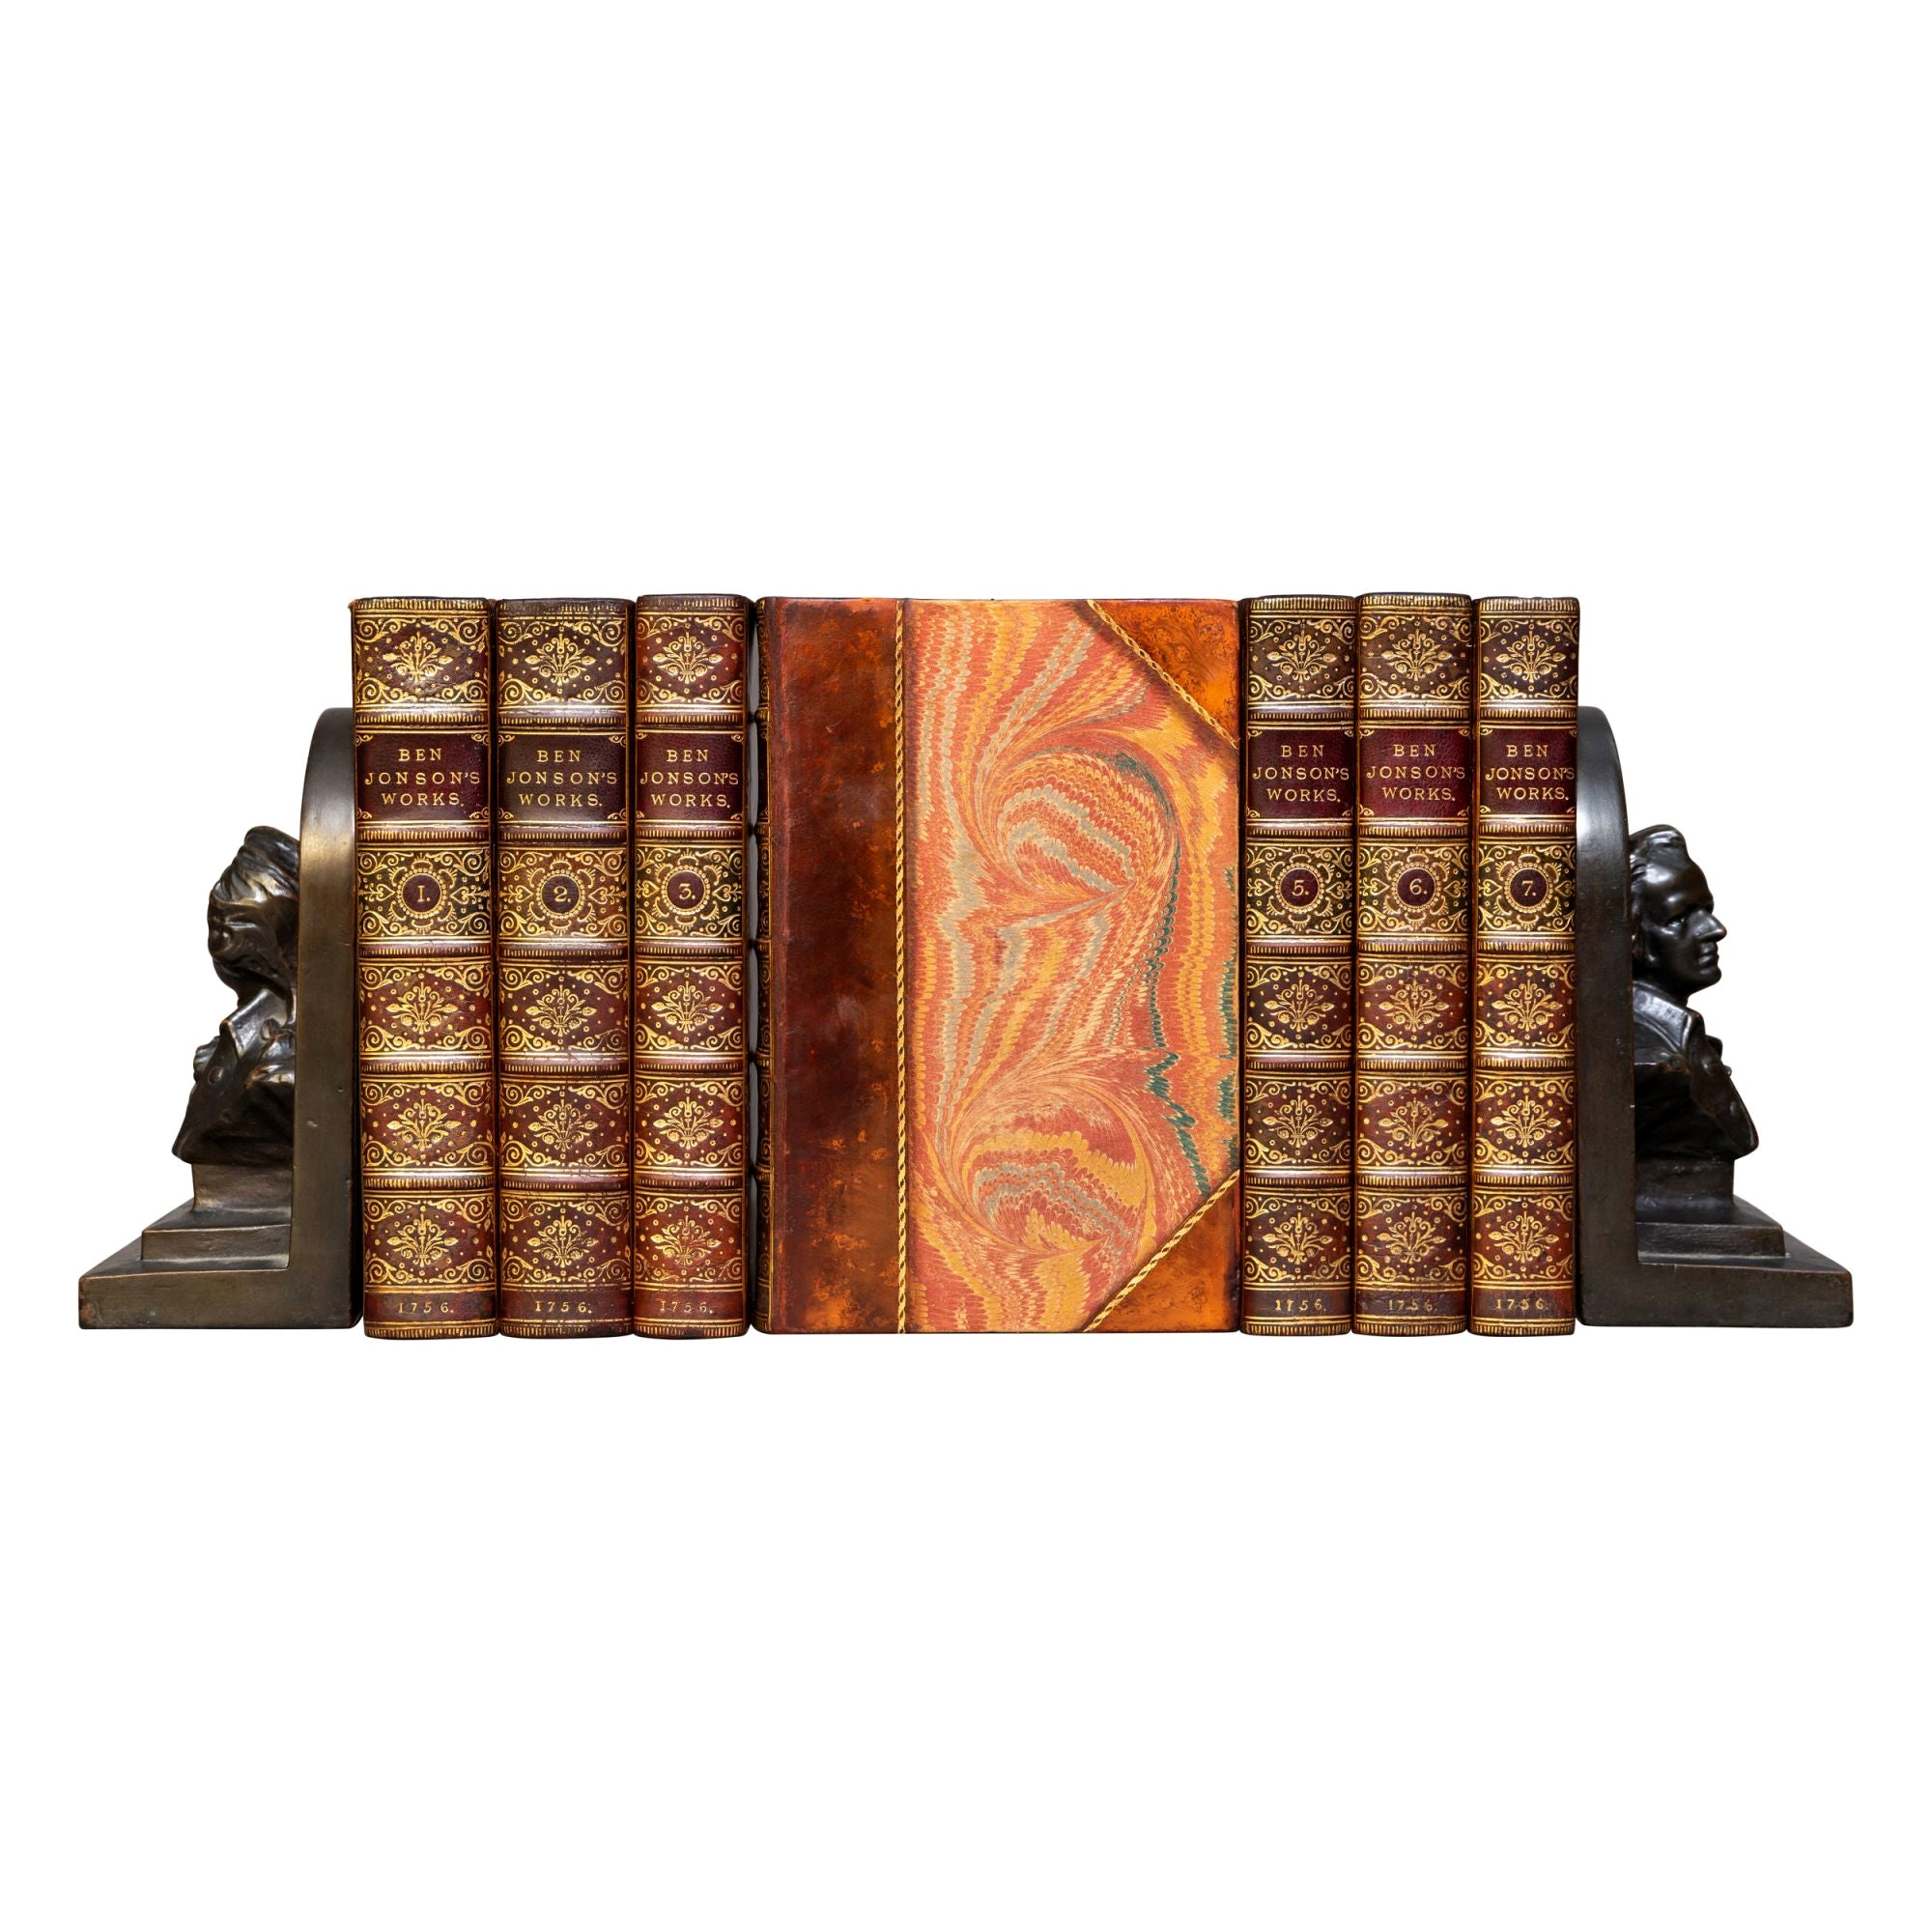 'Book Sets' 7 Volumes, Ben Johnson, the Complete Works